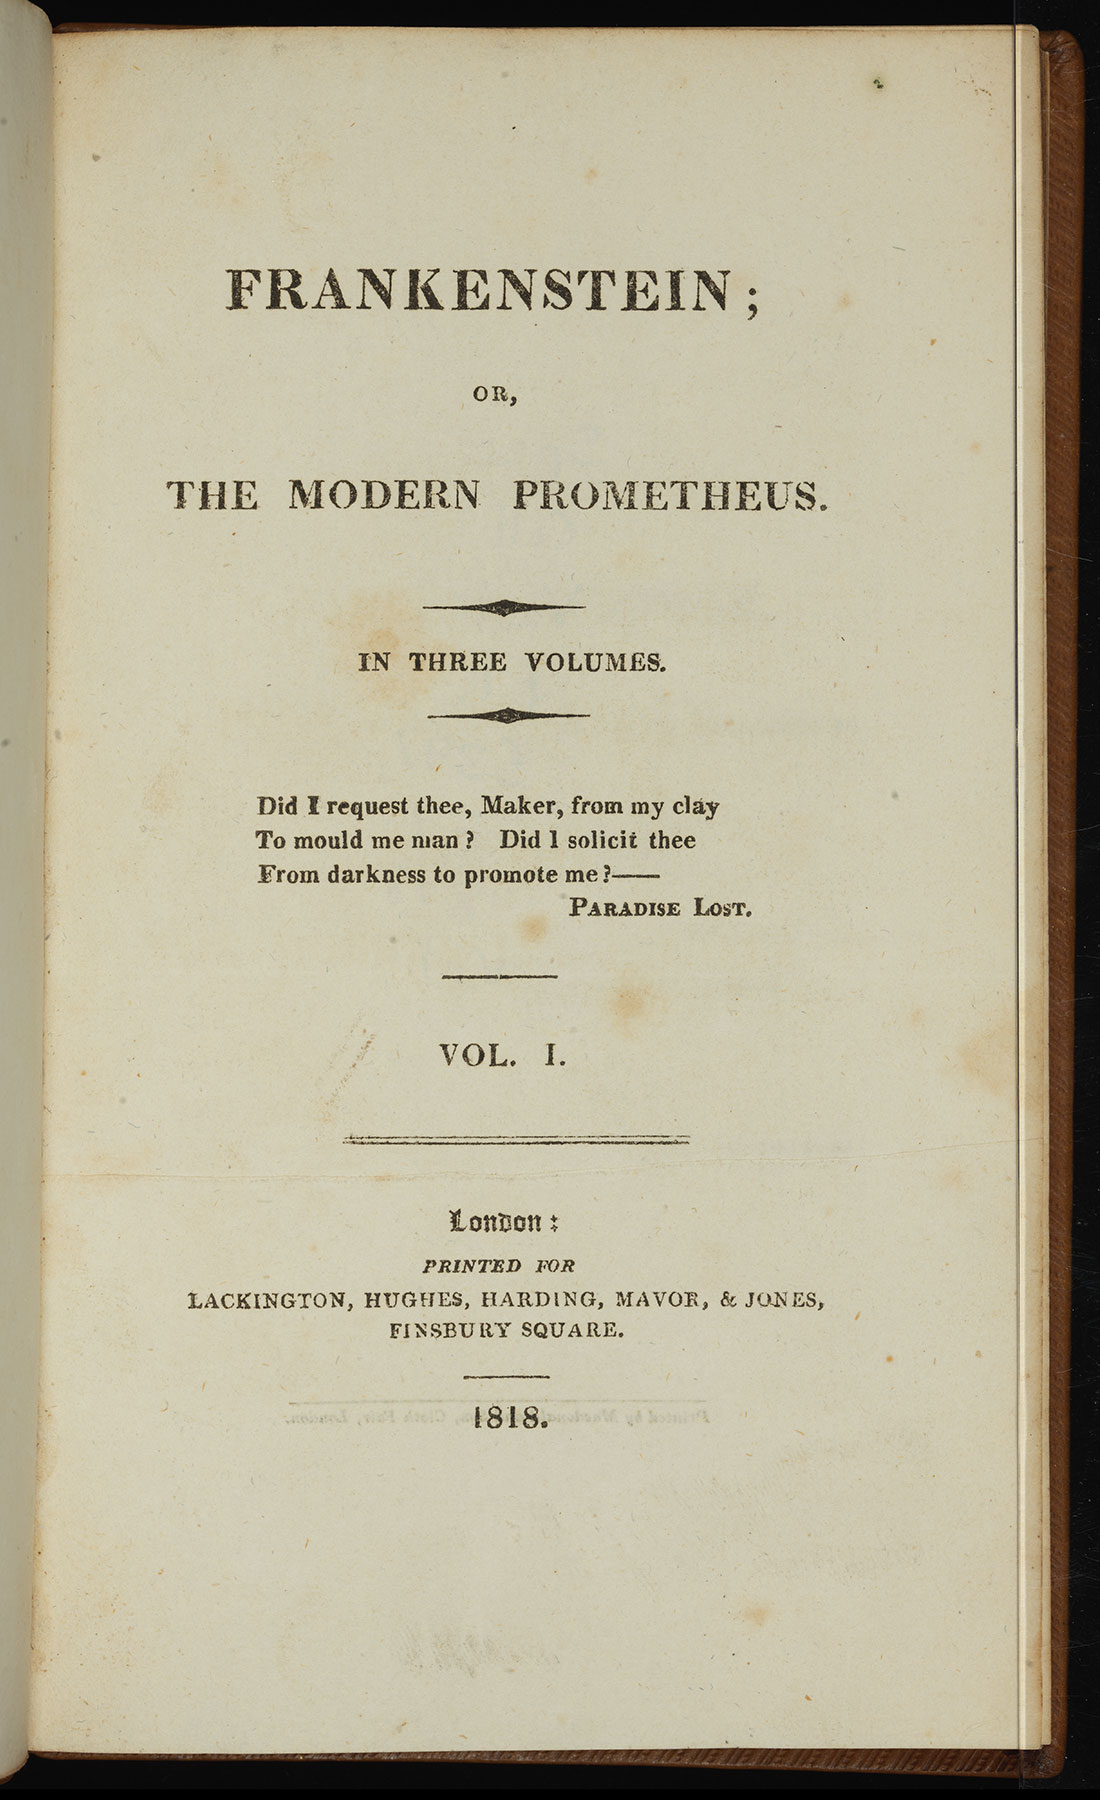 Title page of first edition of Frankenstein, Volume I, 1818.